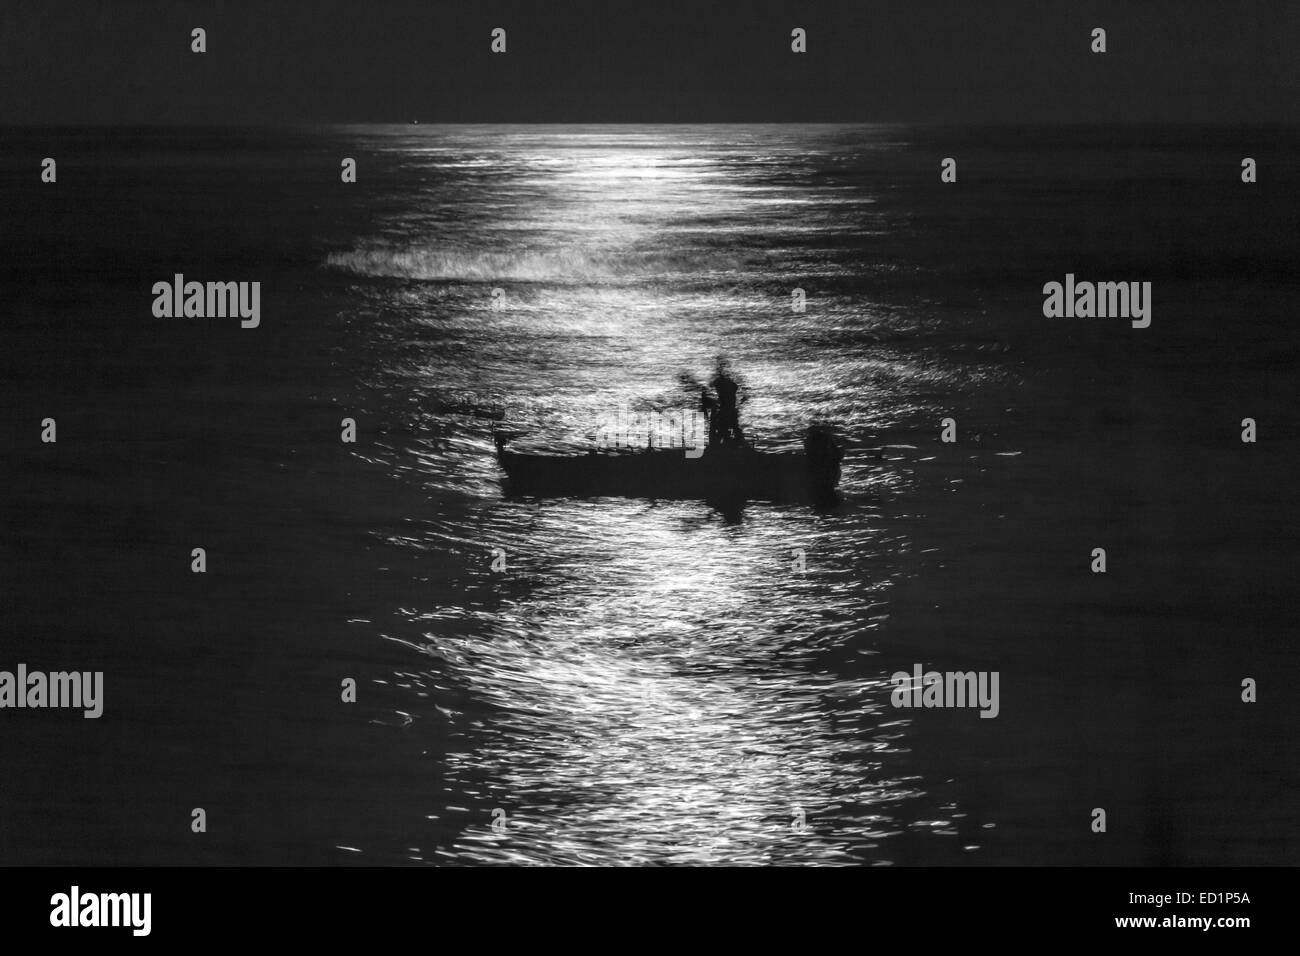 Fishermen Silouette at Full Moon in Torre Archirafi little village in east Sicily - Stock Image